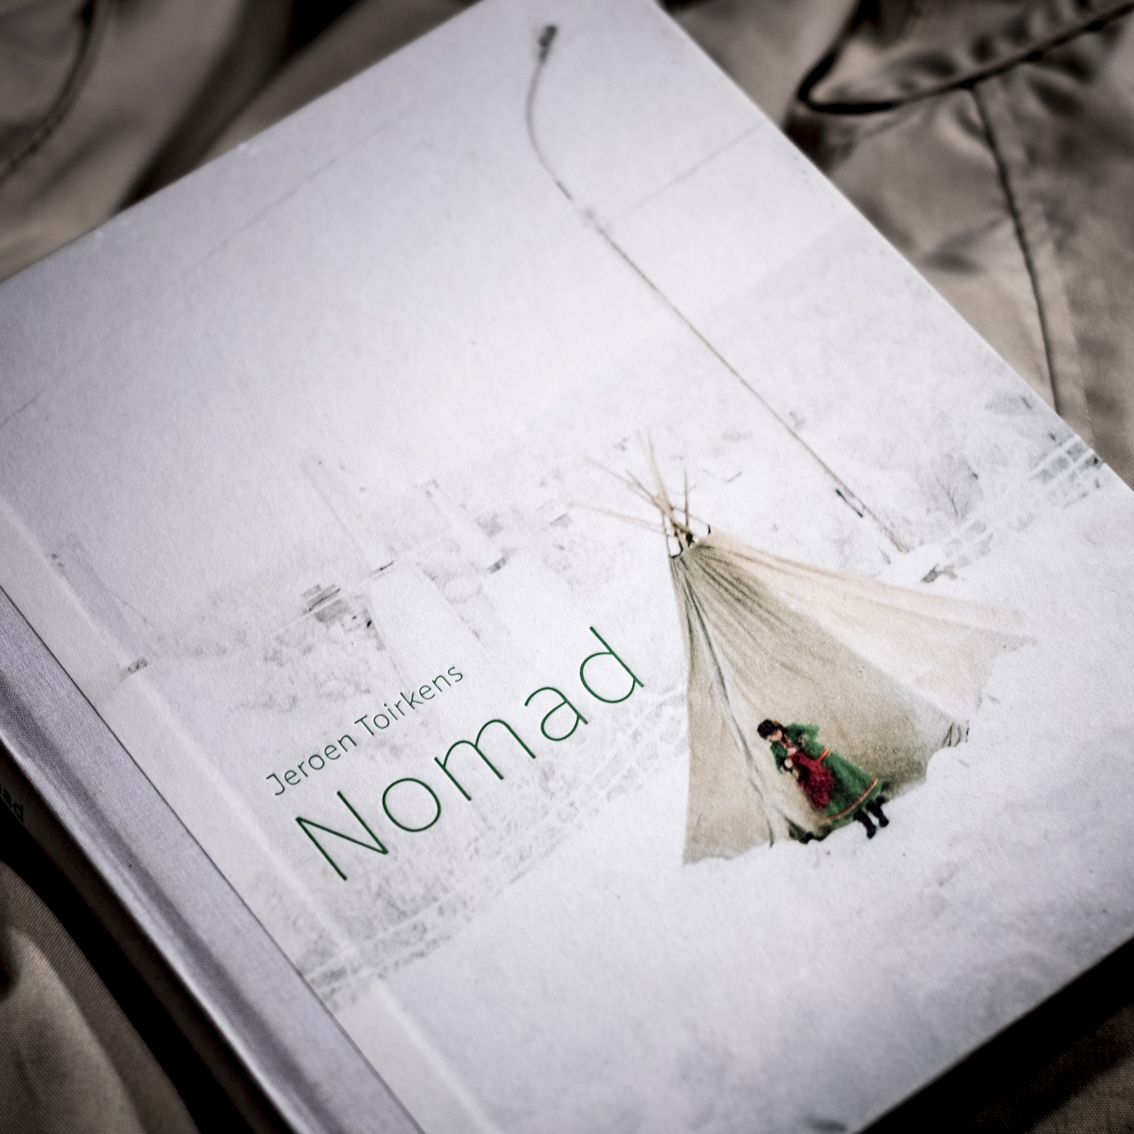 Nomad, Jeroen Toirkens.   Nomads need horses, and so there are some in this wonderful book. The most beautiful is that on page 54, in Dukha Mongolia made in 2007: a horse that seems to be a nomad. A book for everyone who feels a little bit nomad, so now and then.